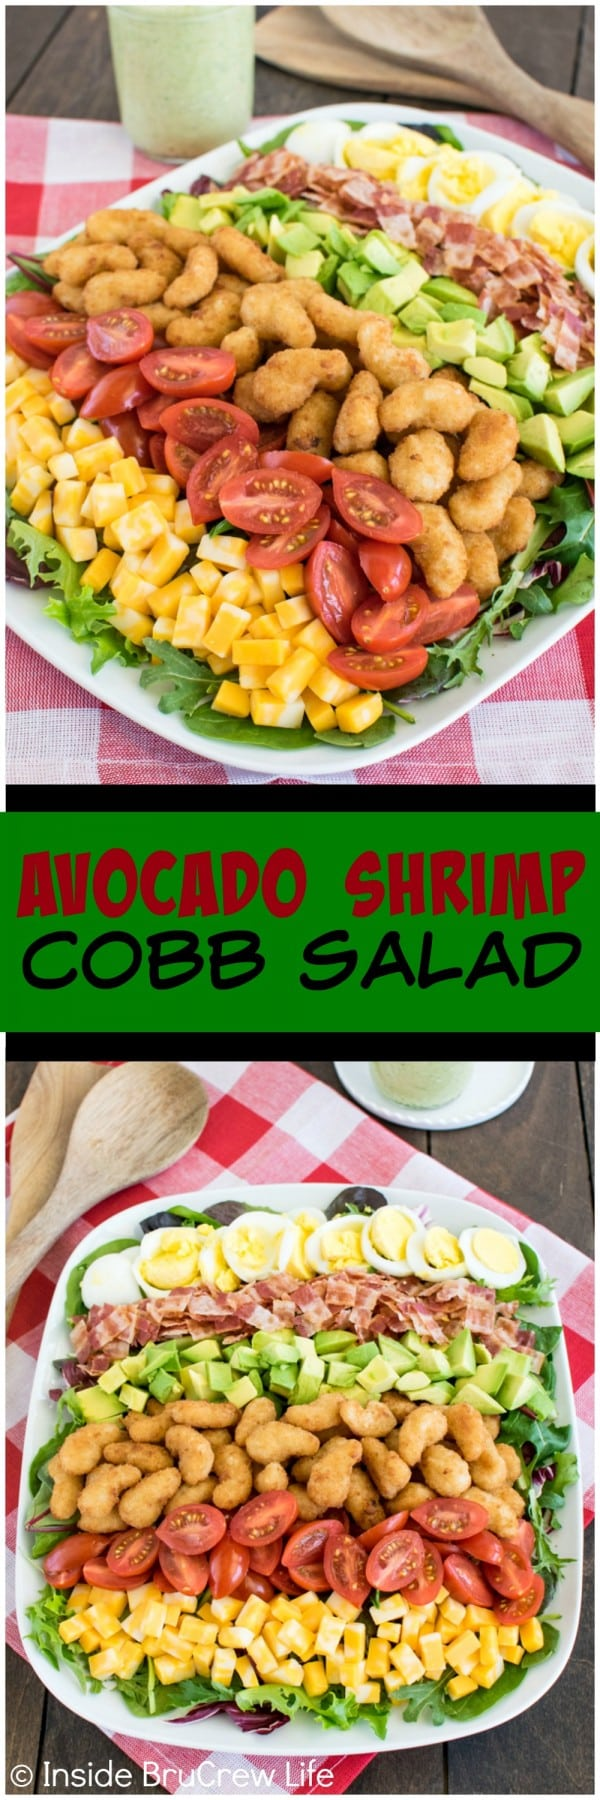 Avocado Shrimp Cobb Salad - layers of shrimp, cheese, and veggies make this easy salad a healthier dinner choice.